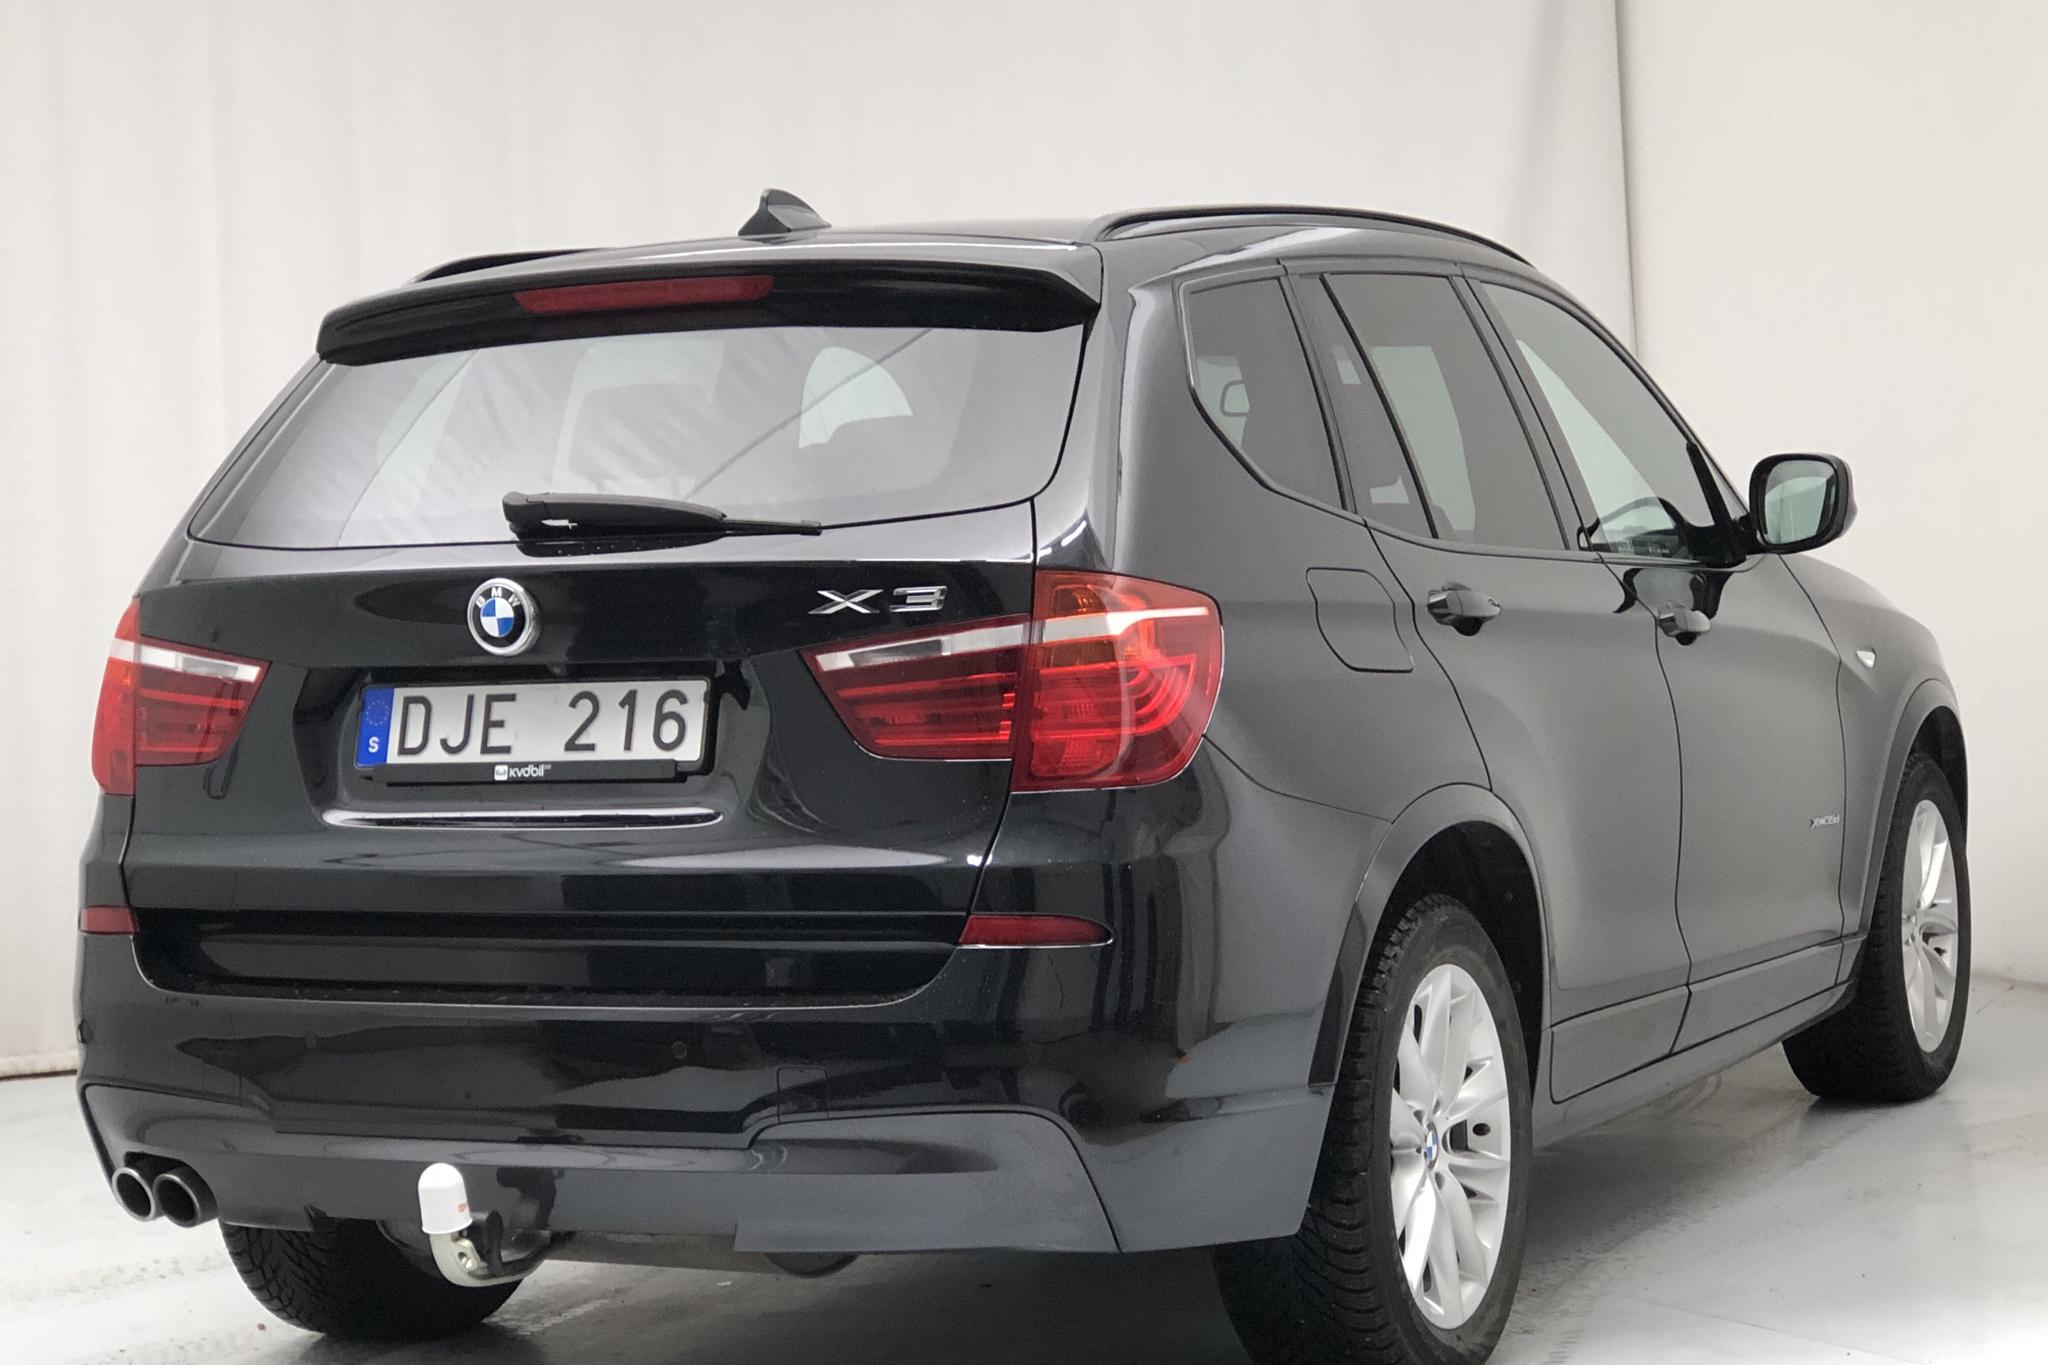 BMW X3 xDrive35d, F25 (313hk) - 151 800 km - Automatic - black - 2014